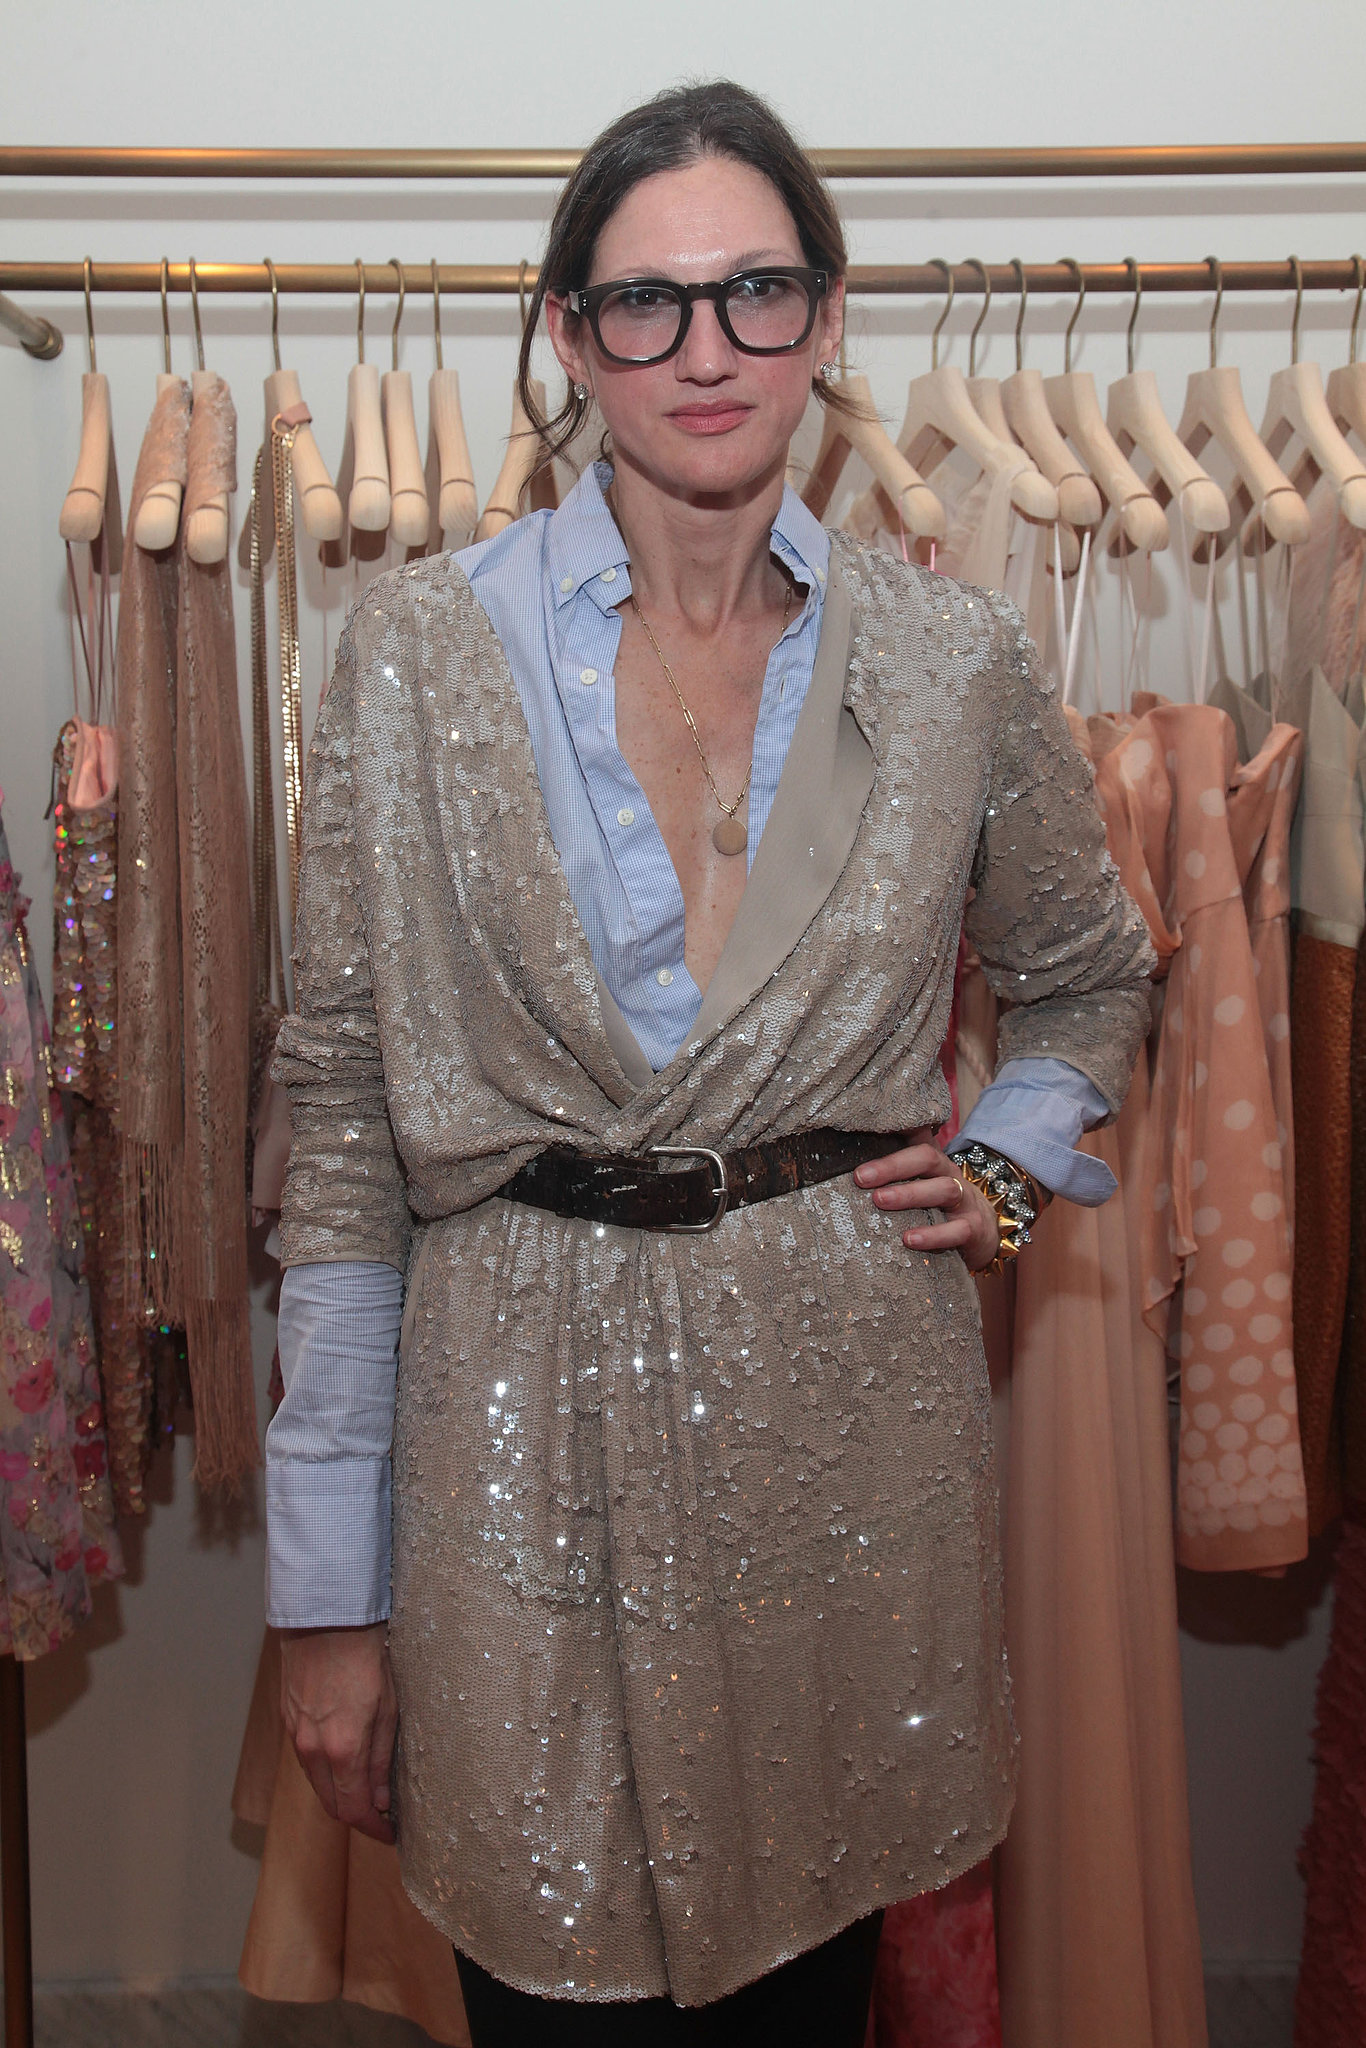 The idea of draping and belting a sequin cardigan over a preppy button-down feels novel but totally works.